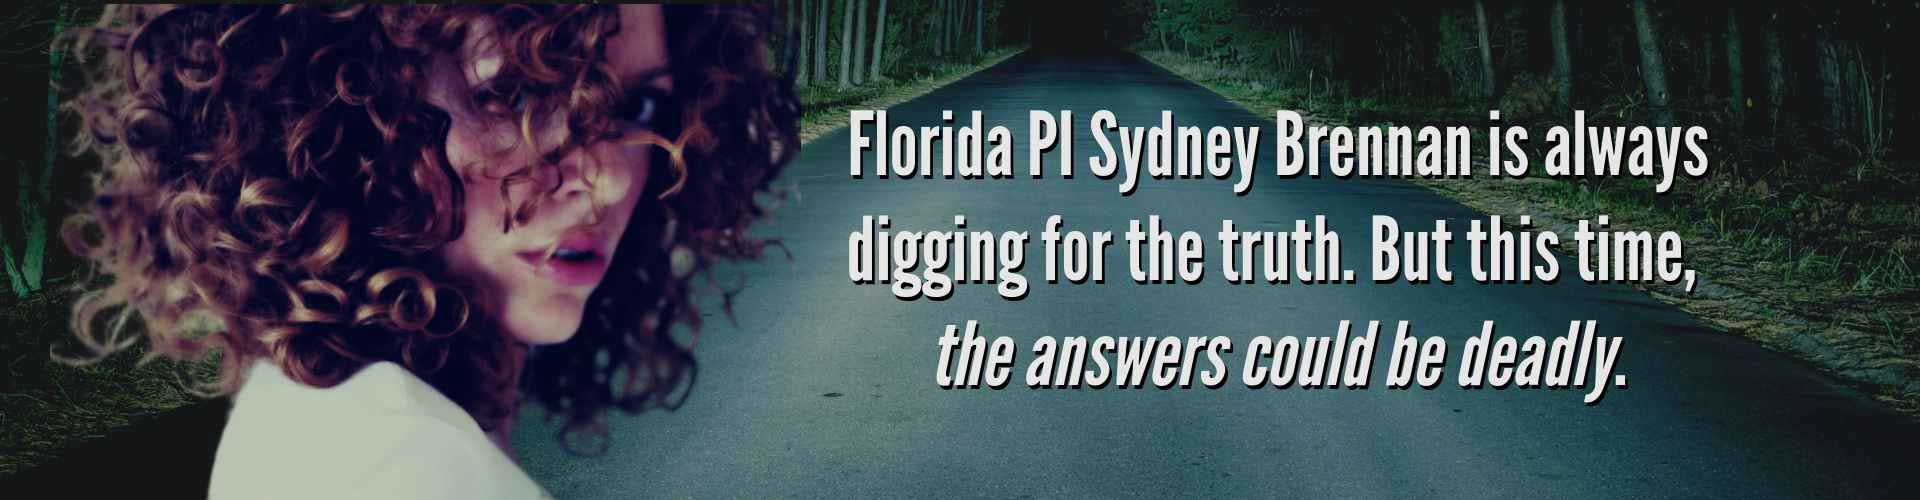 Florida PI Sydney Brennan on a deserted road at night, from Back to Lazarus, Book One of the Sydney Brennan Mysteries